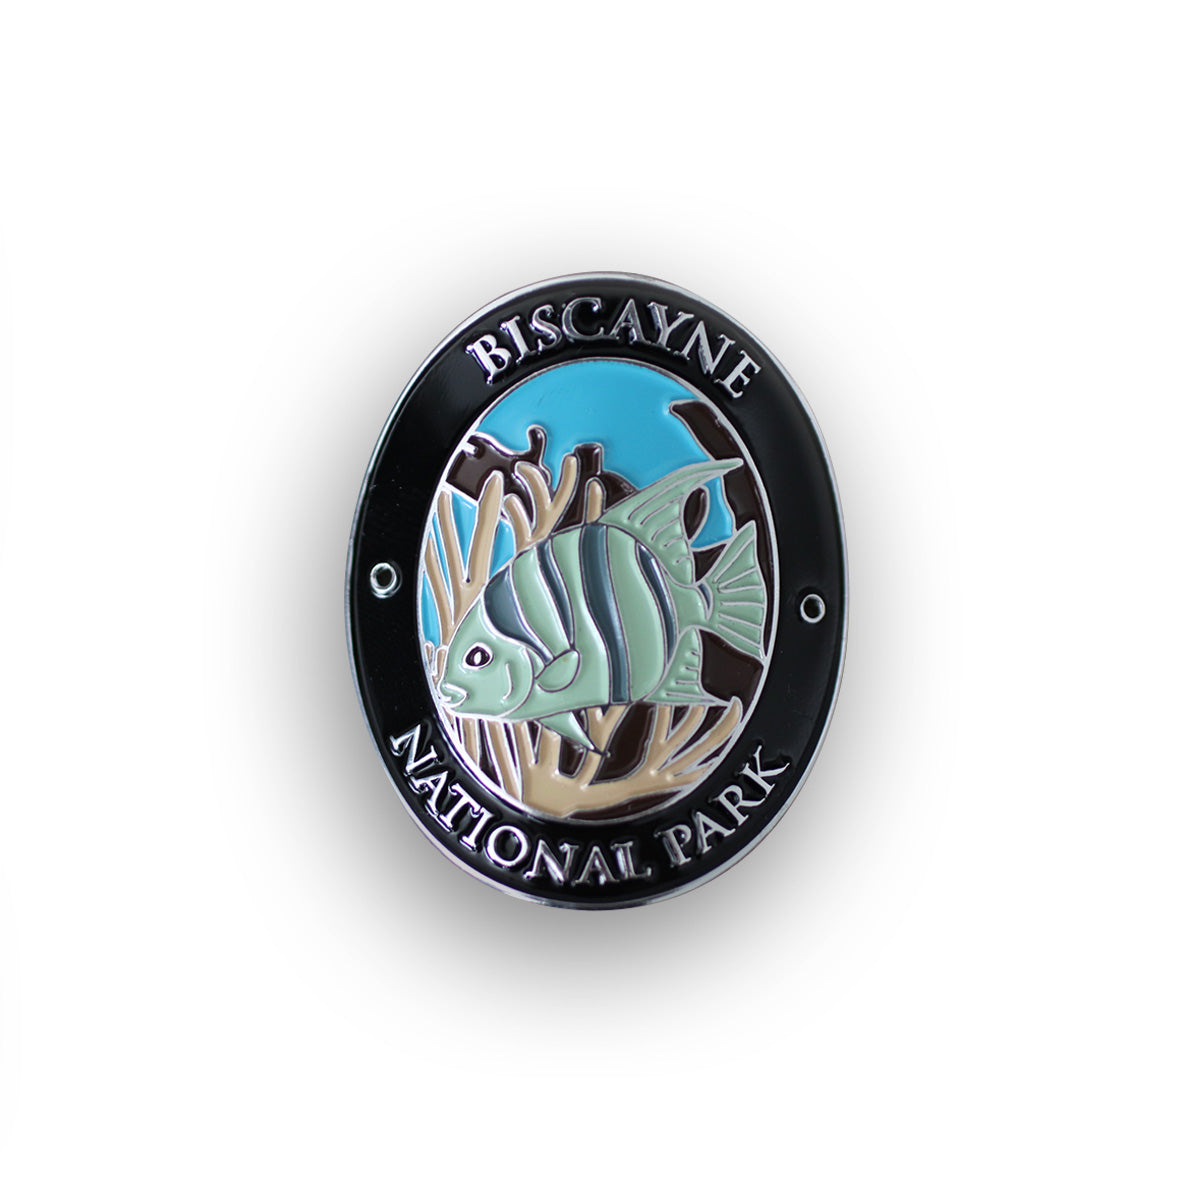 Biscayne National Park Walking Stick Medallion